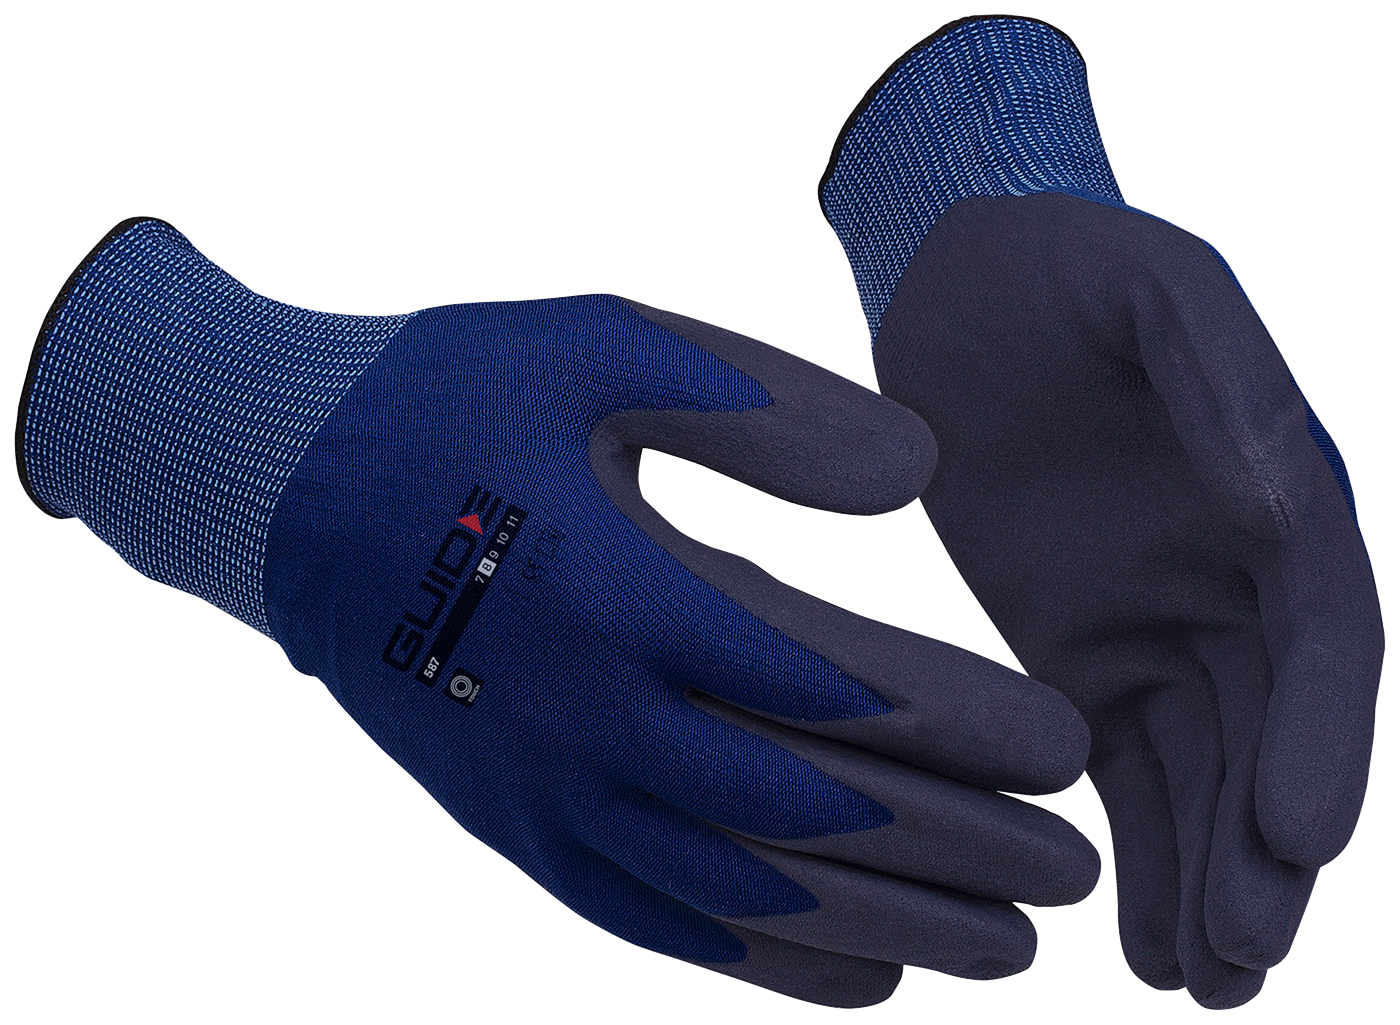 Working Glove GUIDE 587